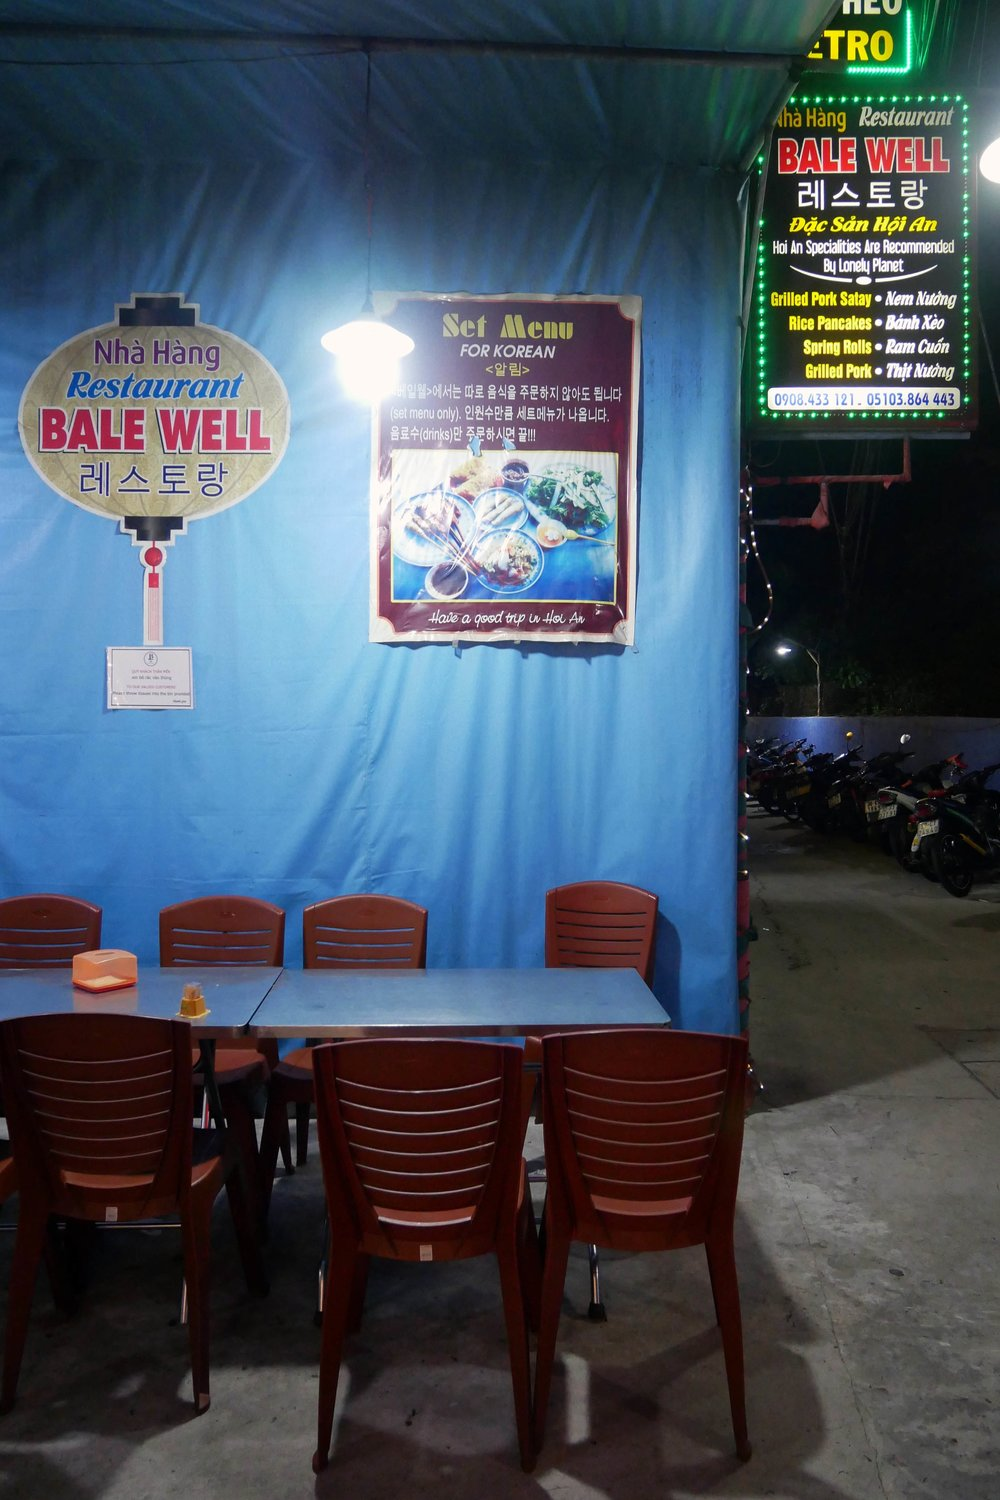 Entrance to Bale Well restaurant